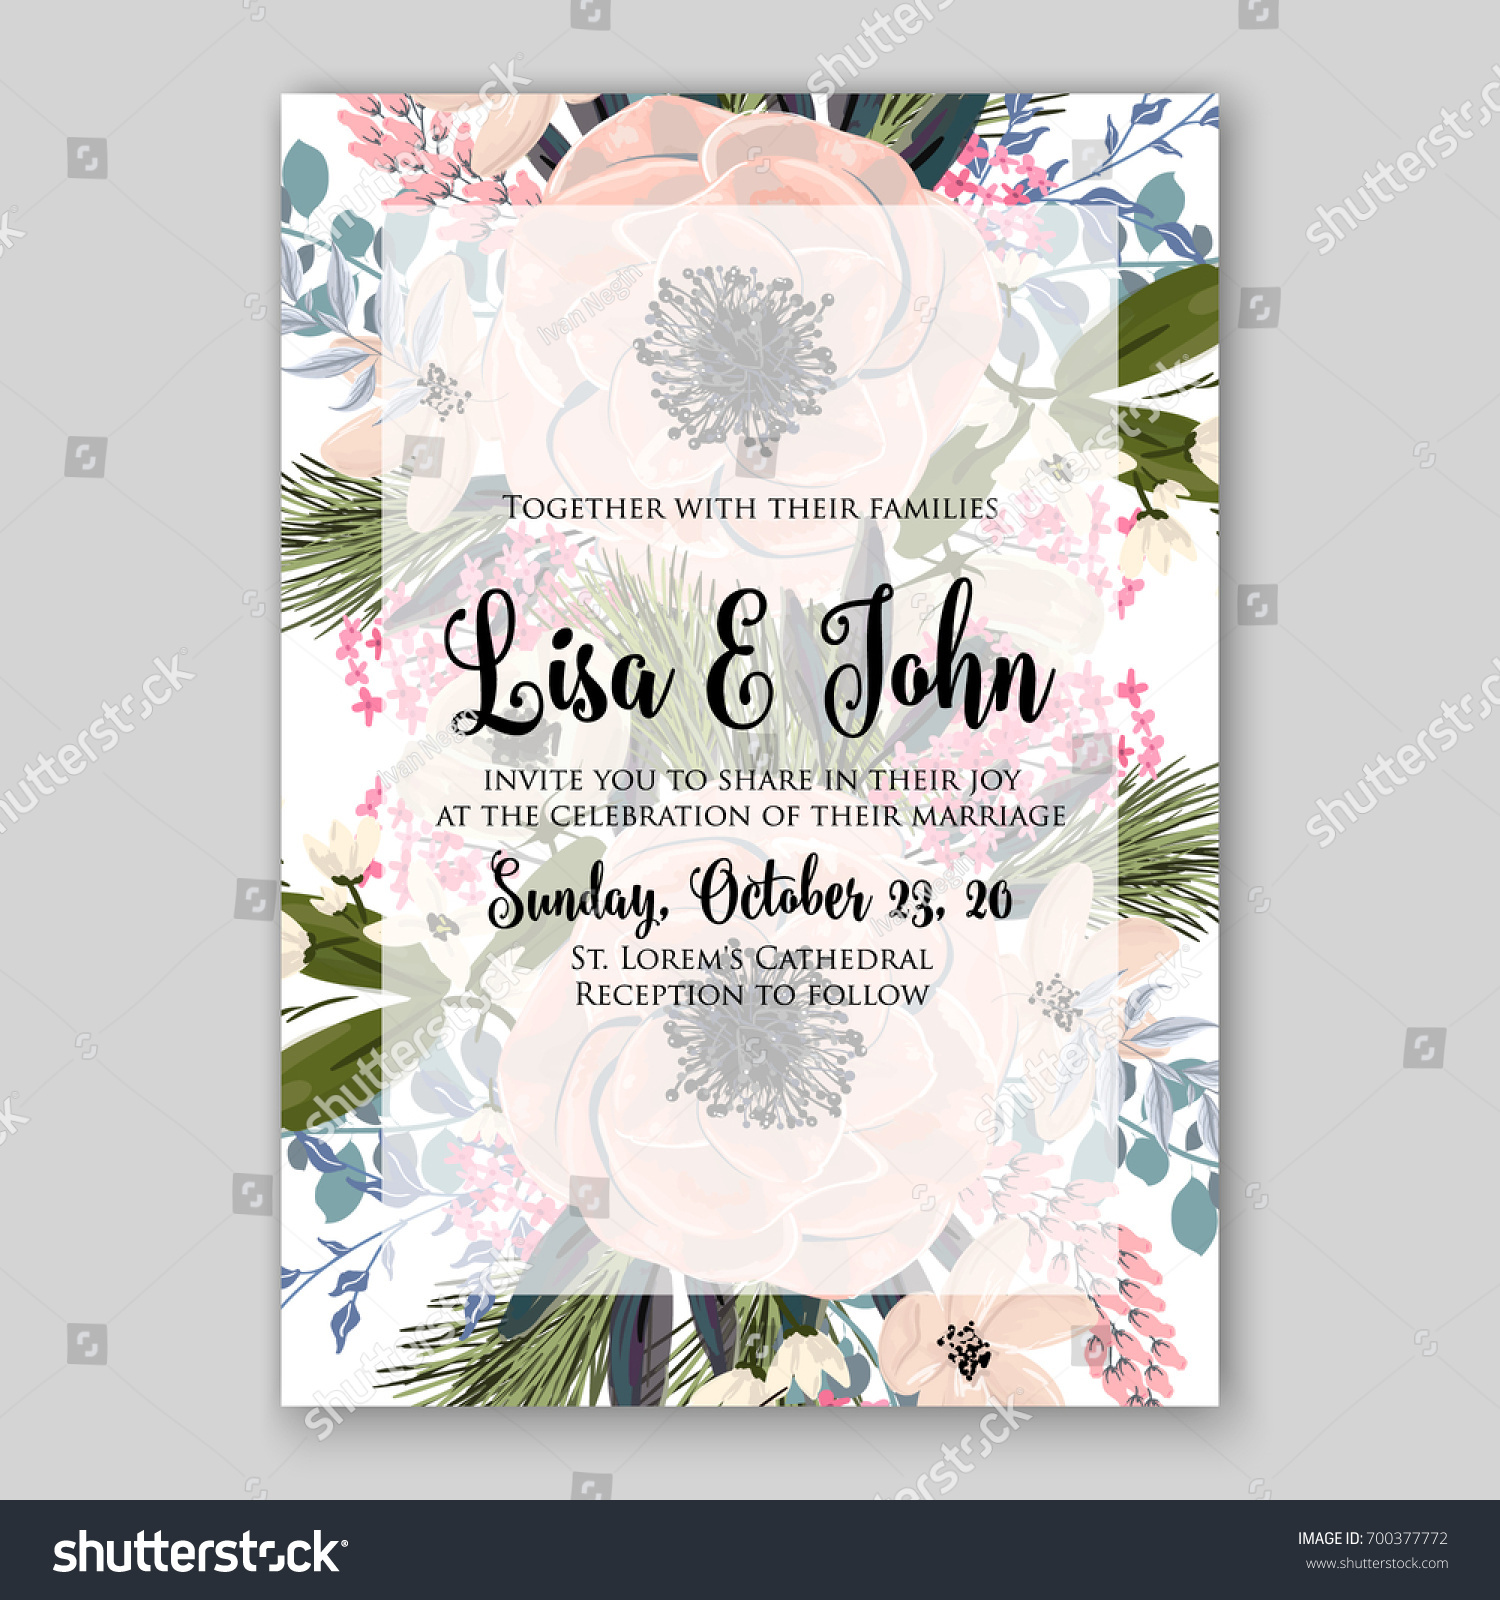 Wedding Invitation Template Floral Ornament Peony Stock Vector (2018 ...